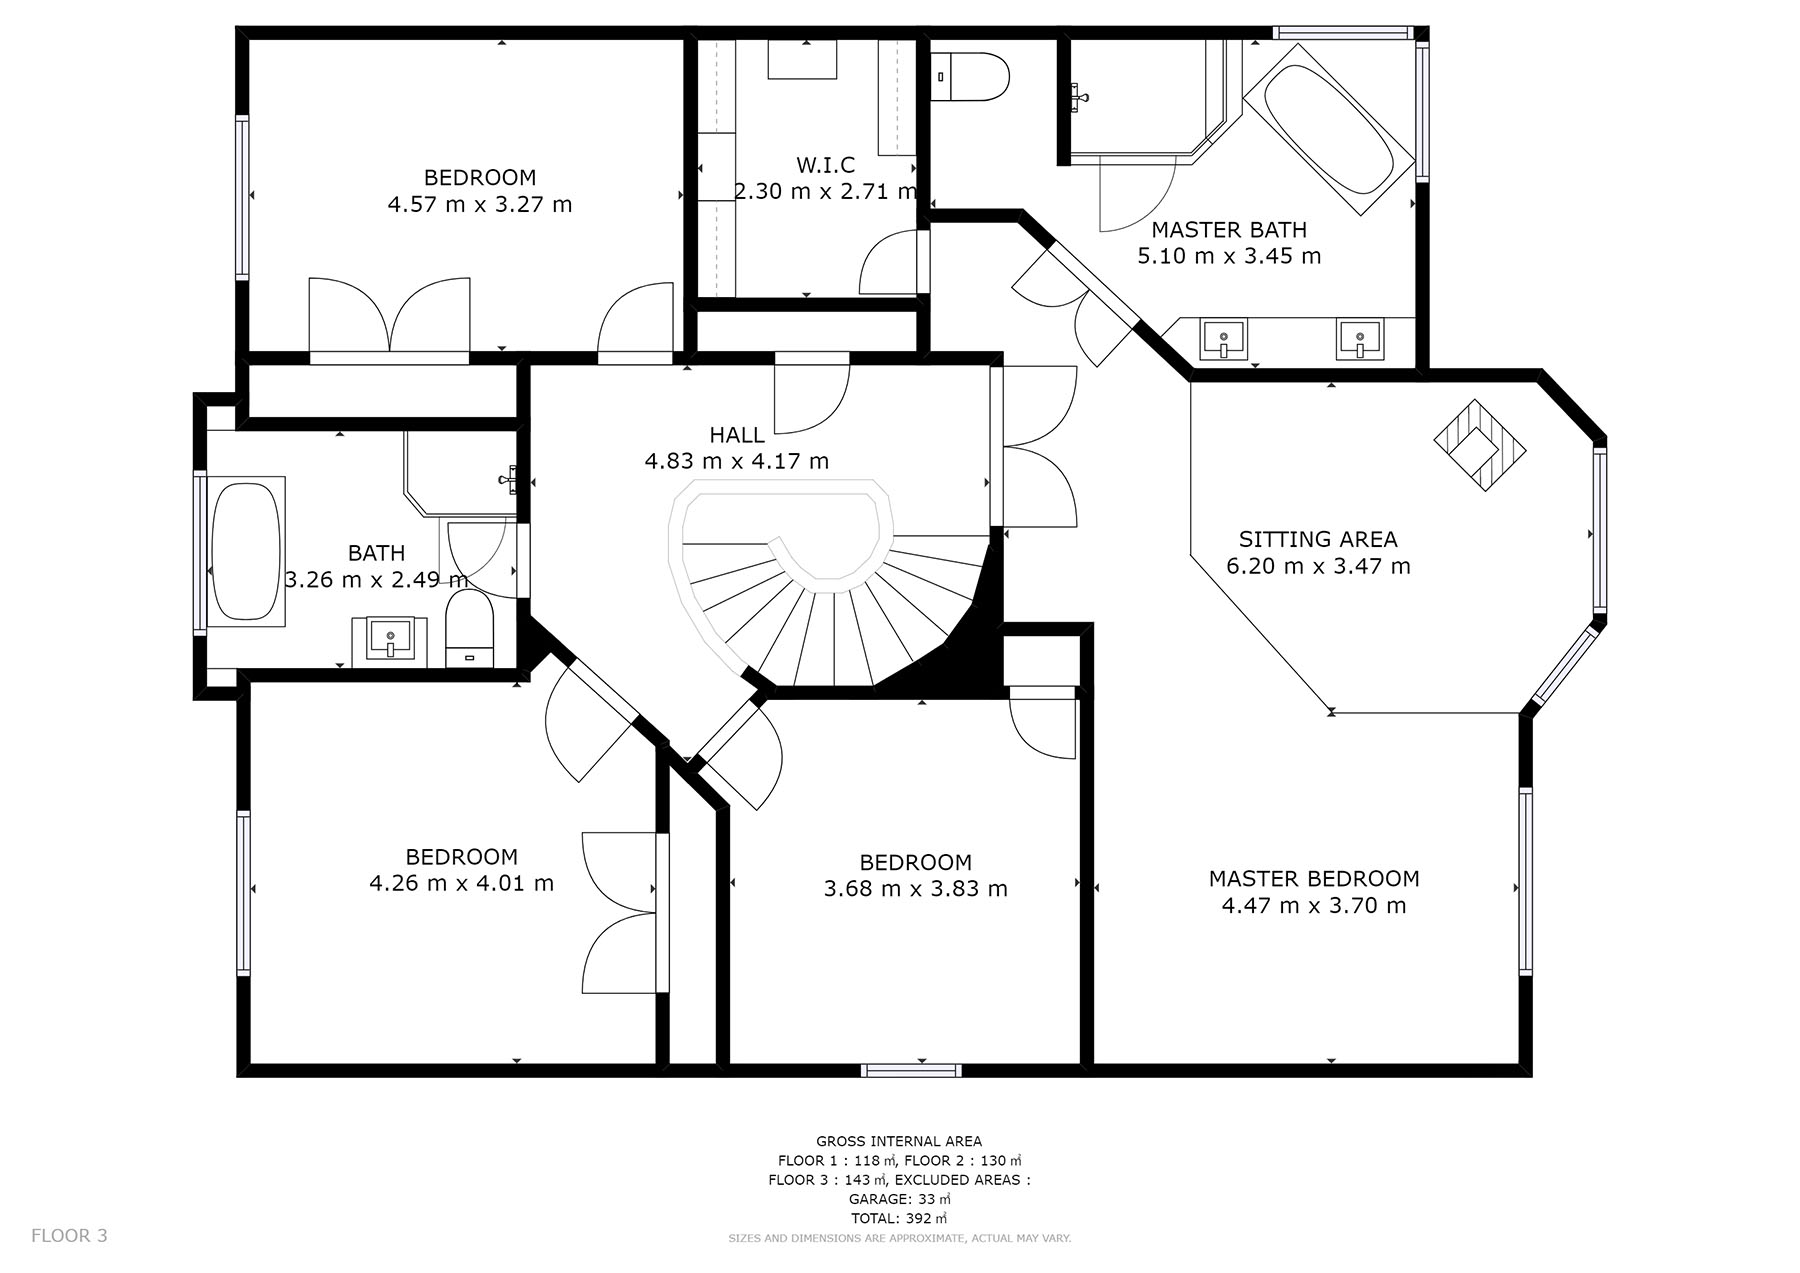 2d 3d Floor Plans Virtual Gta Schematic Matterport Walkthrough